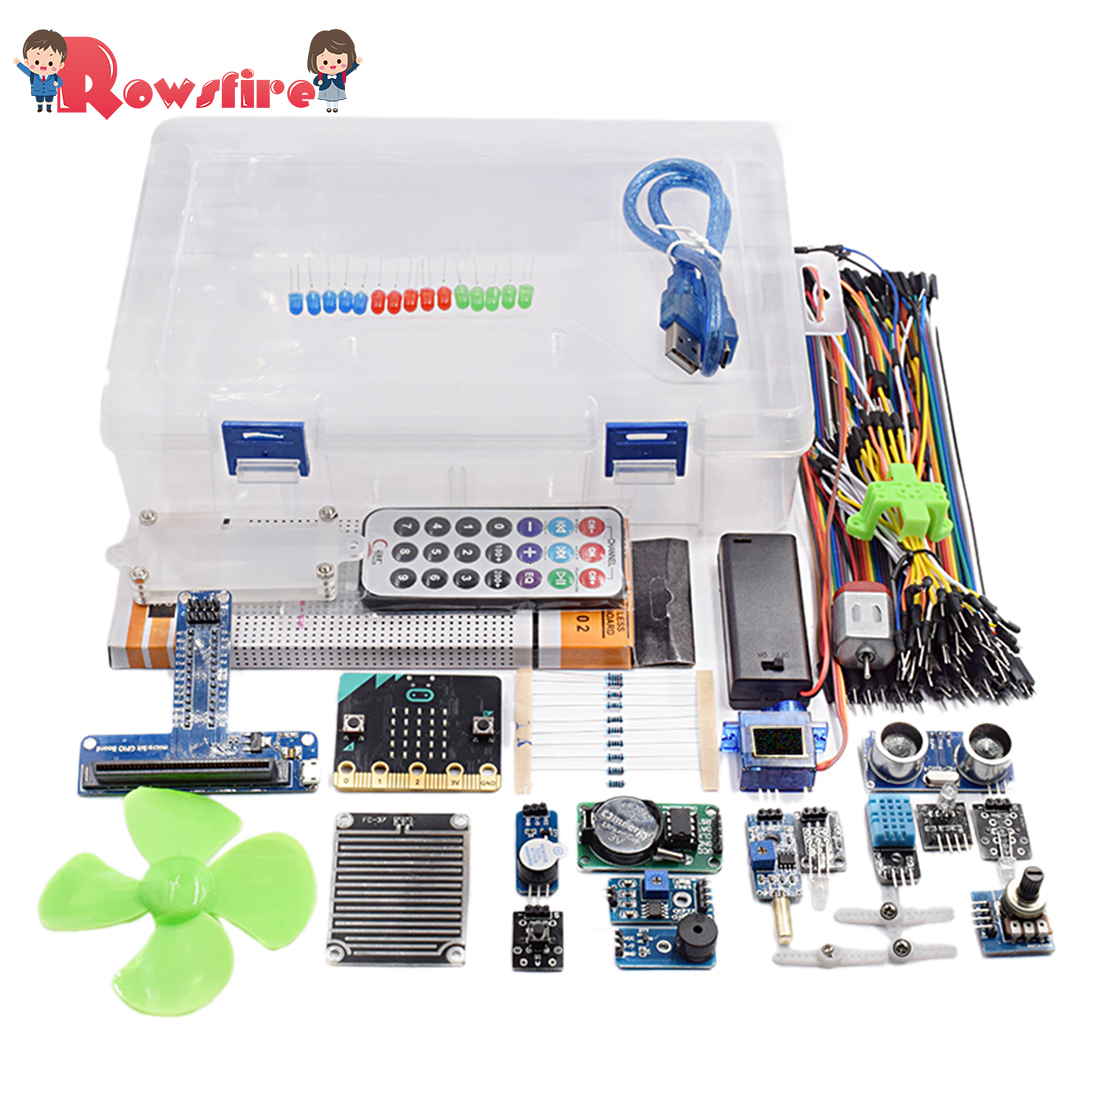 Rowsfire 1 Set Microbit Graphical Programming Starter Sensor Kit For Chidren Adilt Creative Gifts